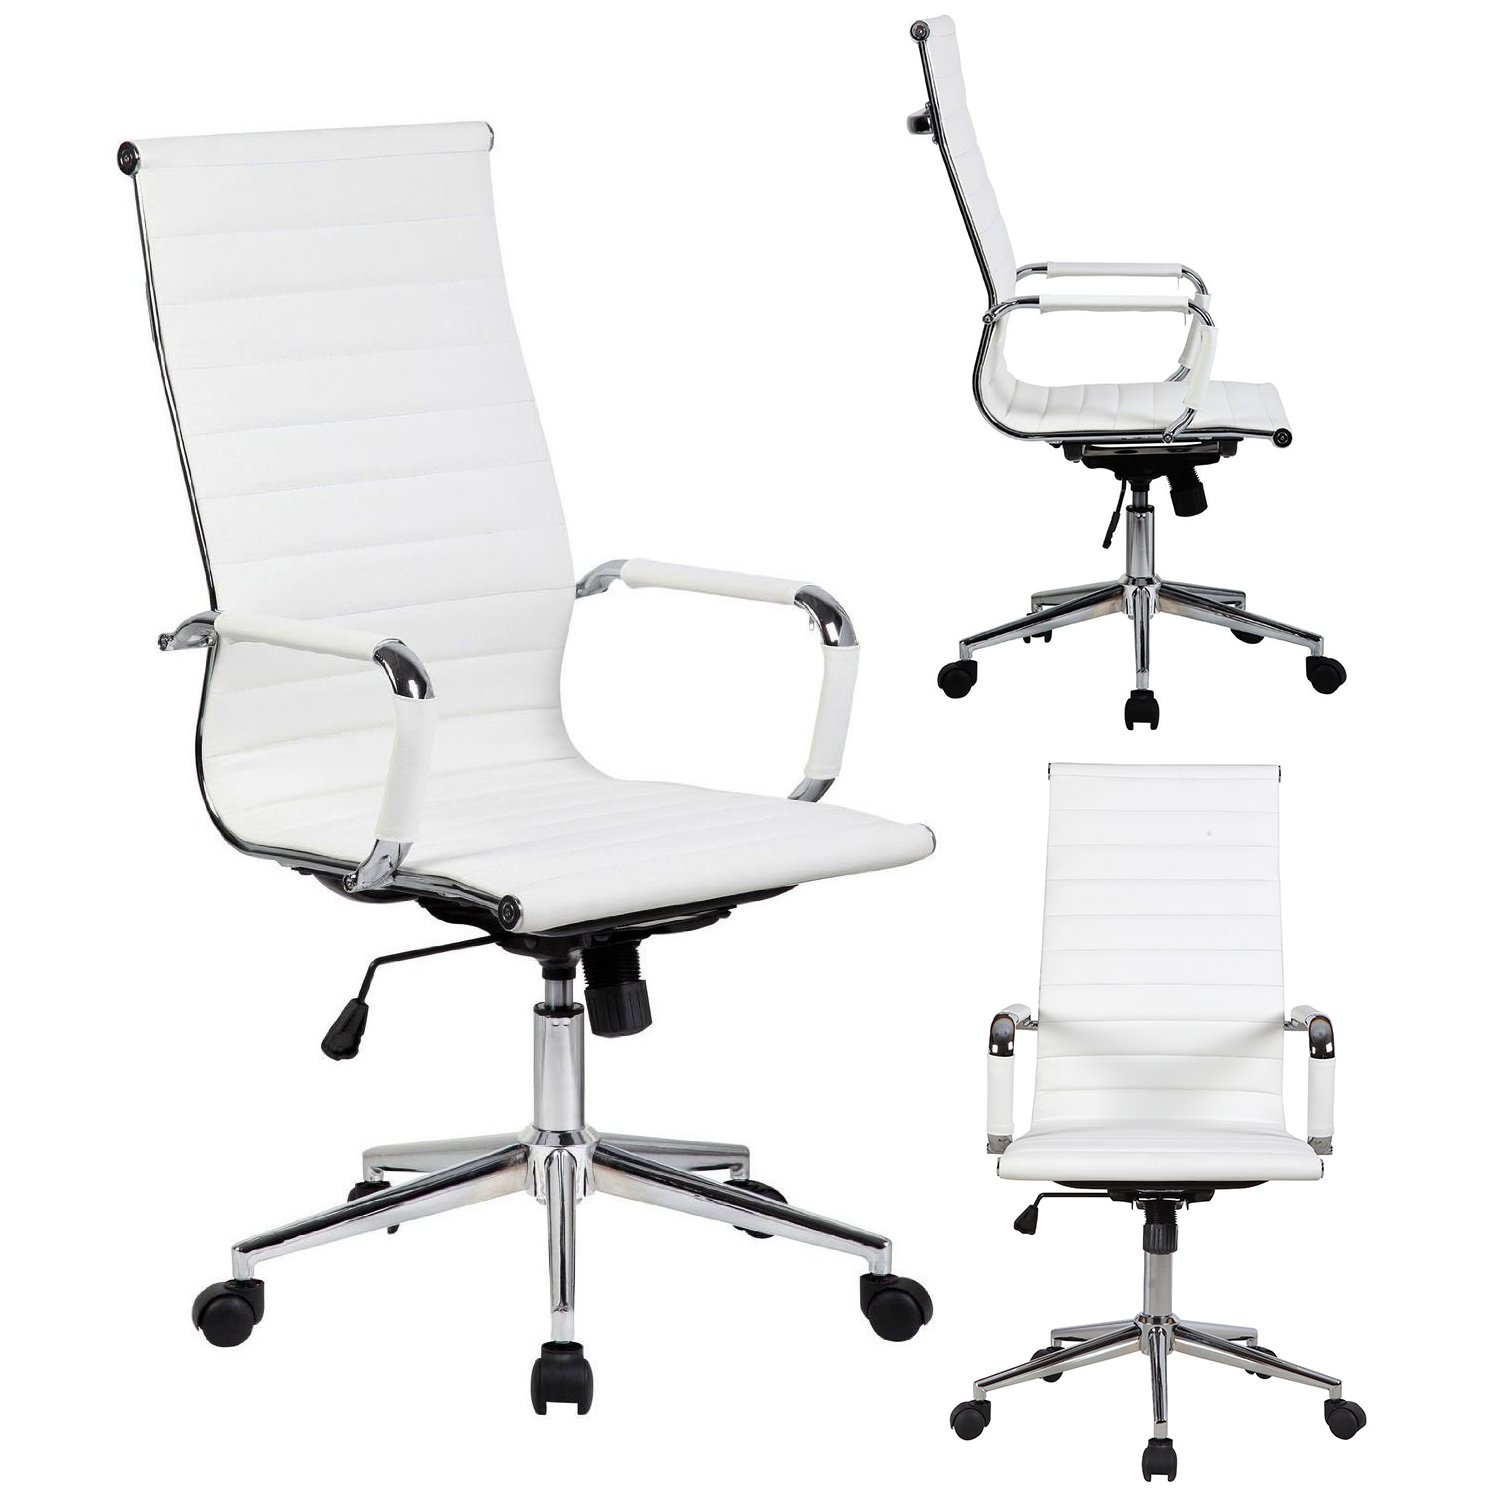 Chair Only In Total White Modern High Back Ribbed PU Leather Chair